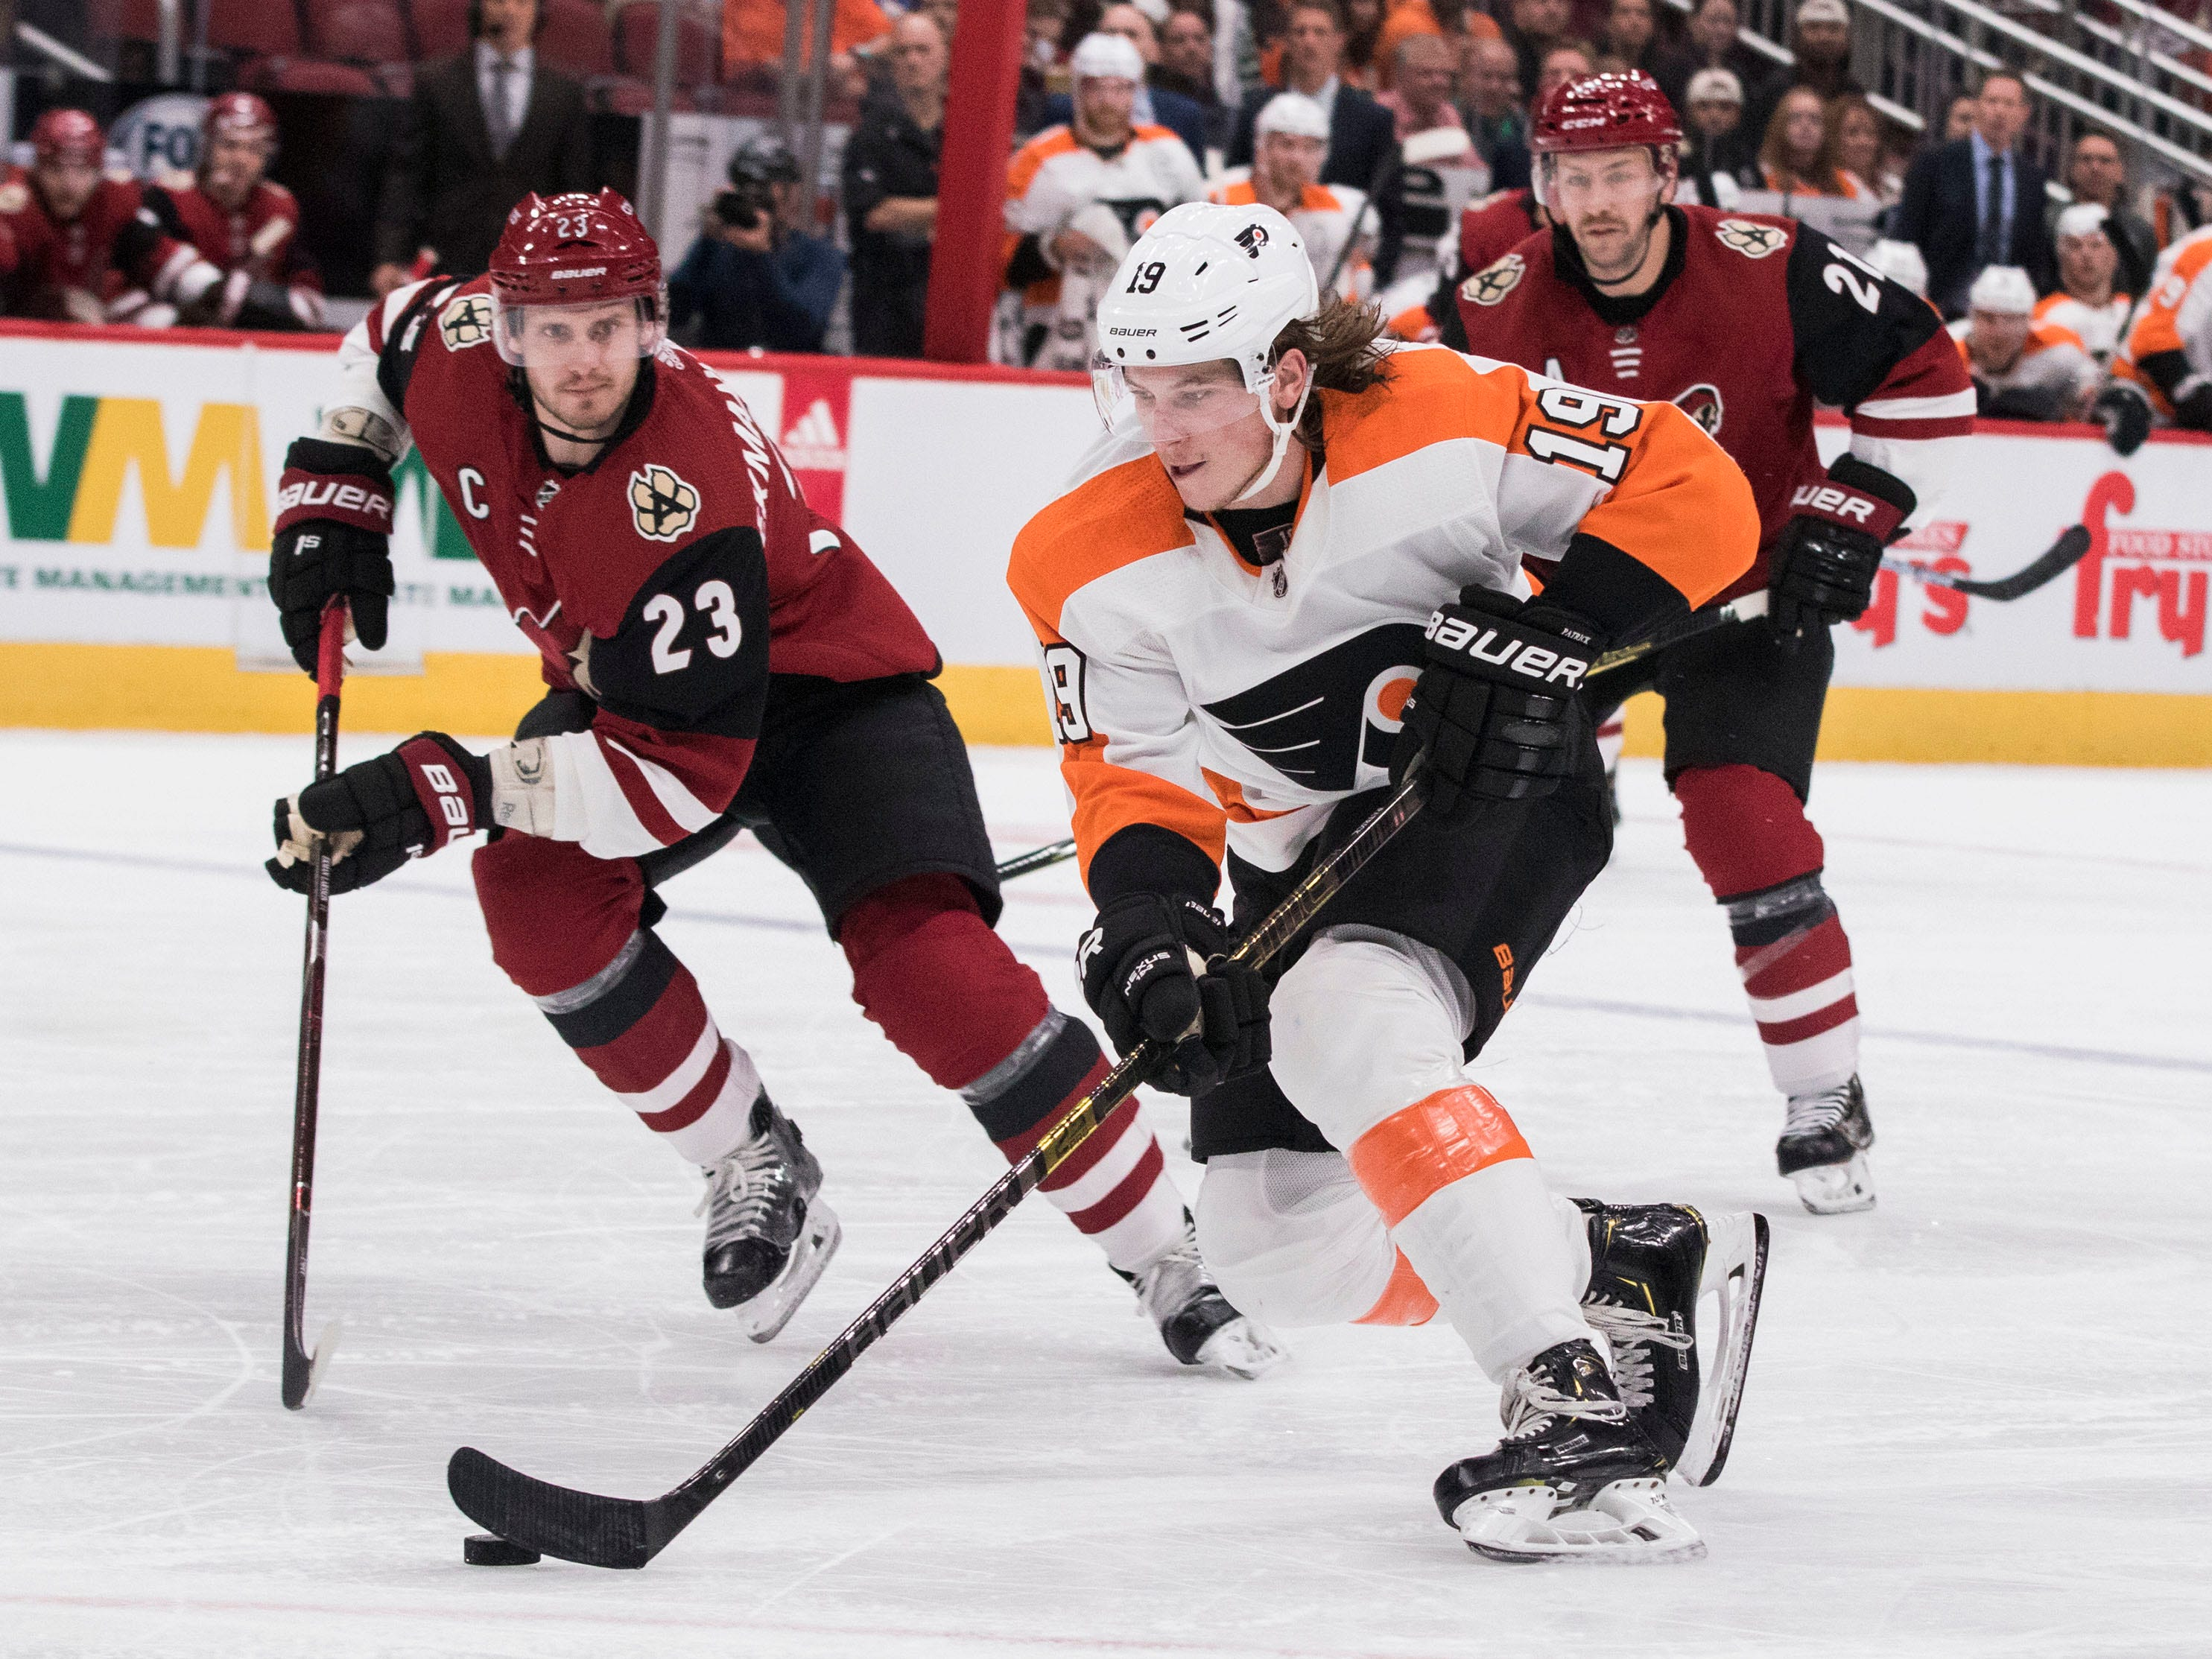 Philadelphia Flyers' Nolan Patrick (19) skates past the Arizona Coyotes' Oliver Ekman-Larsson (23) and Derek Stepan (21) during the first period of an NHL hockey game Monday, Nov. 5, 2018, in Glendale, Ariz. (AP Photo/Darryl Webb)